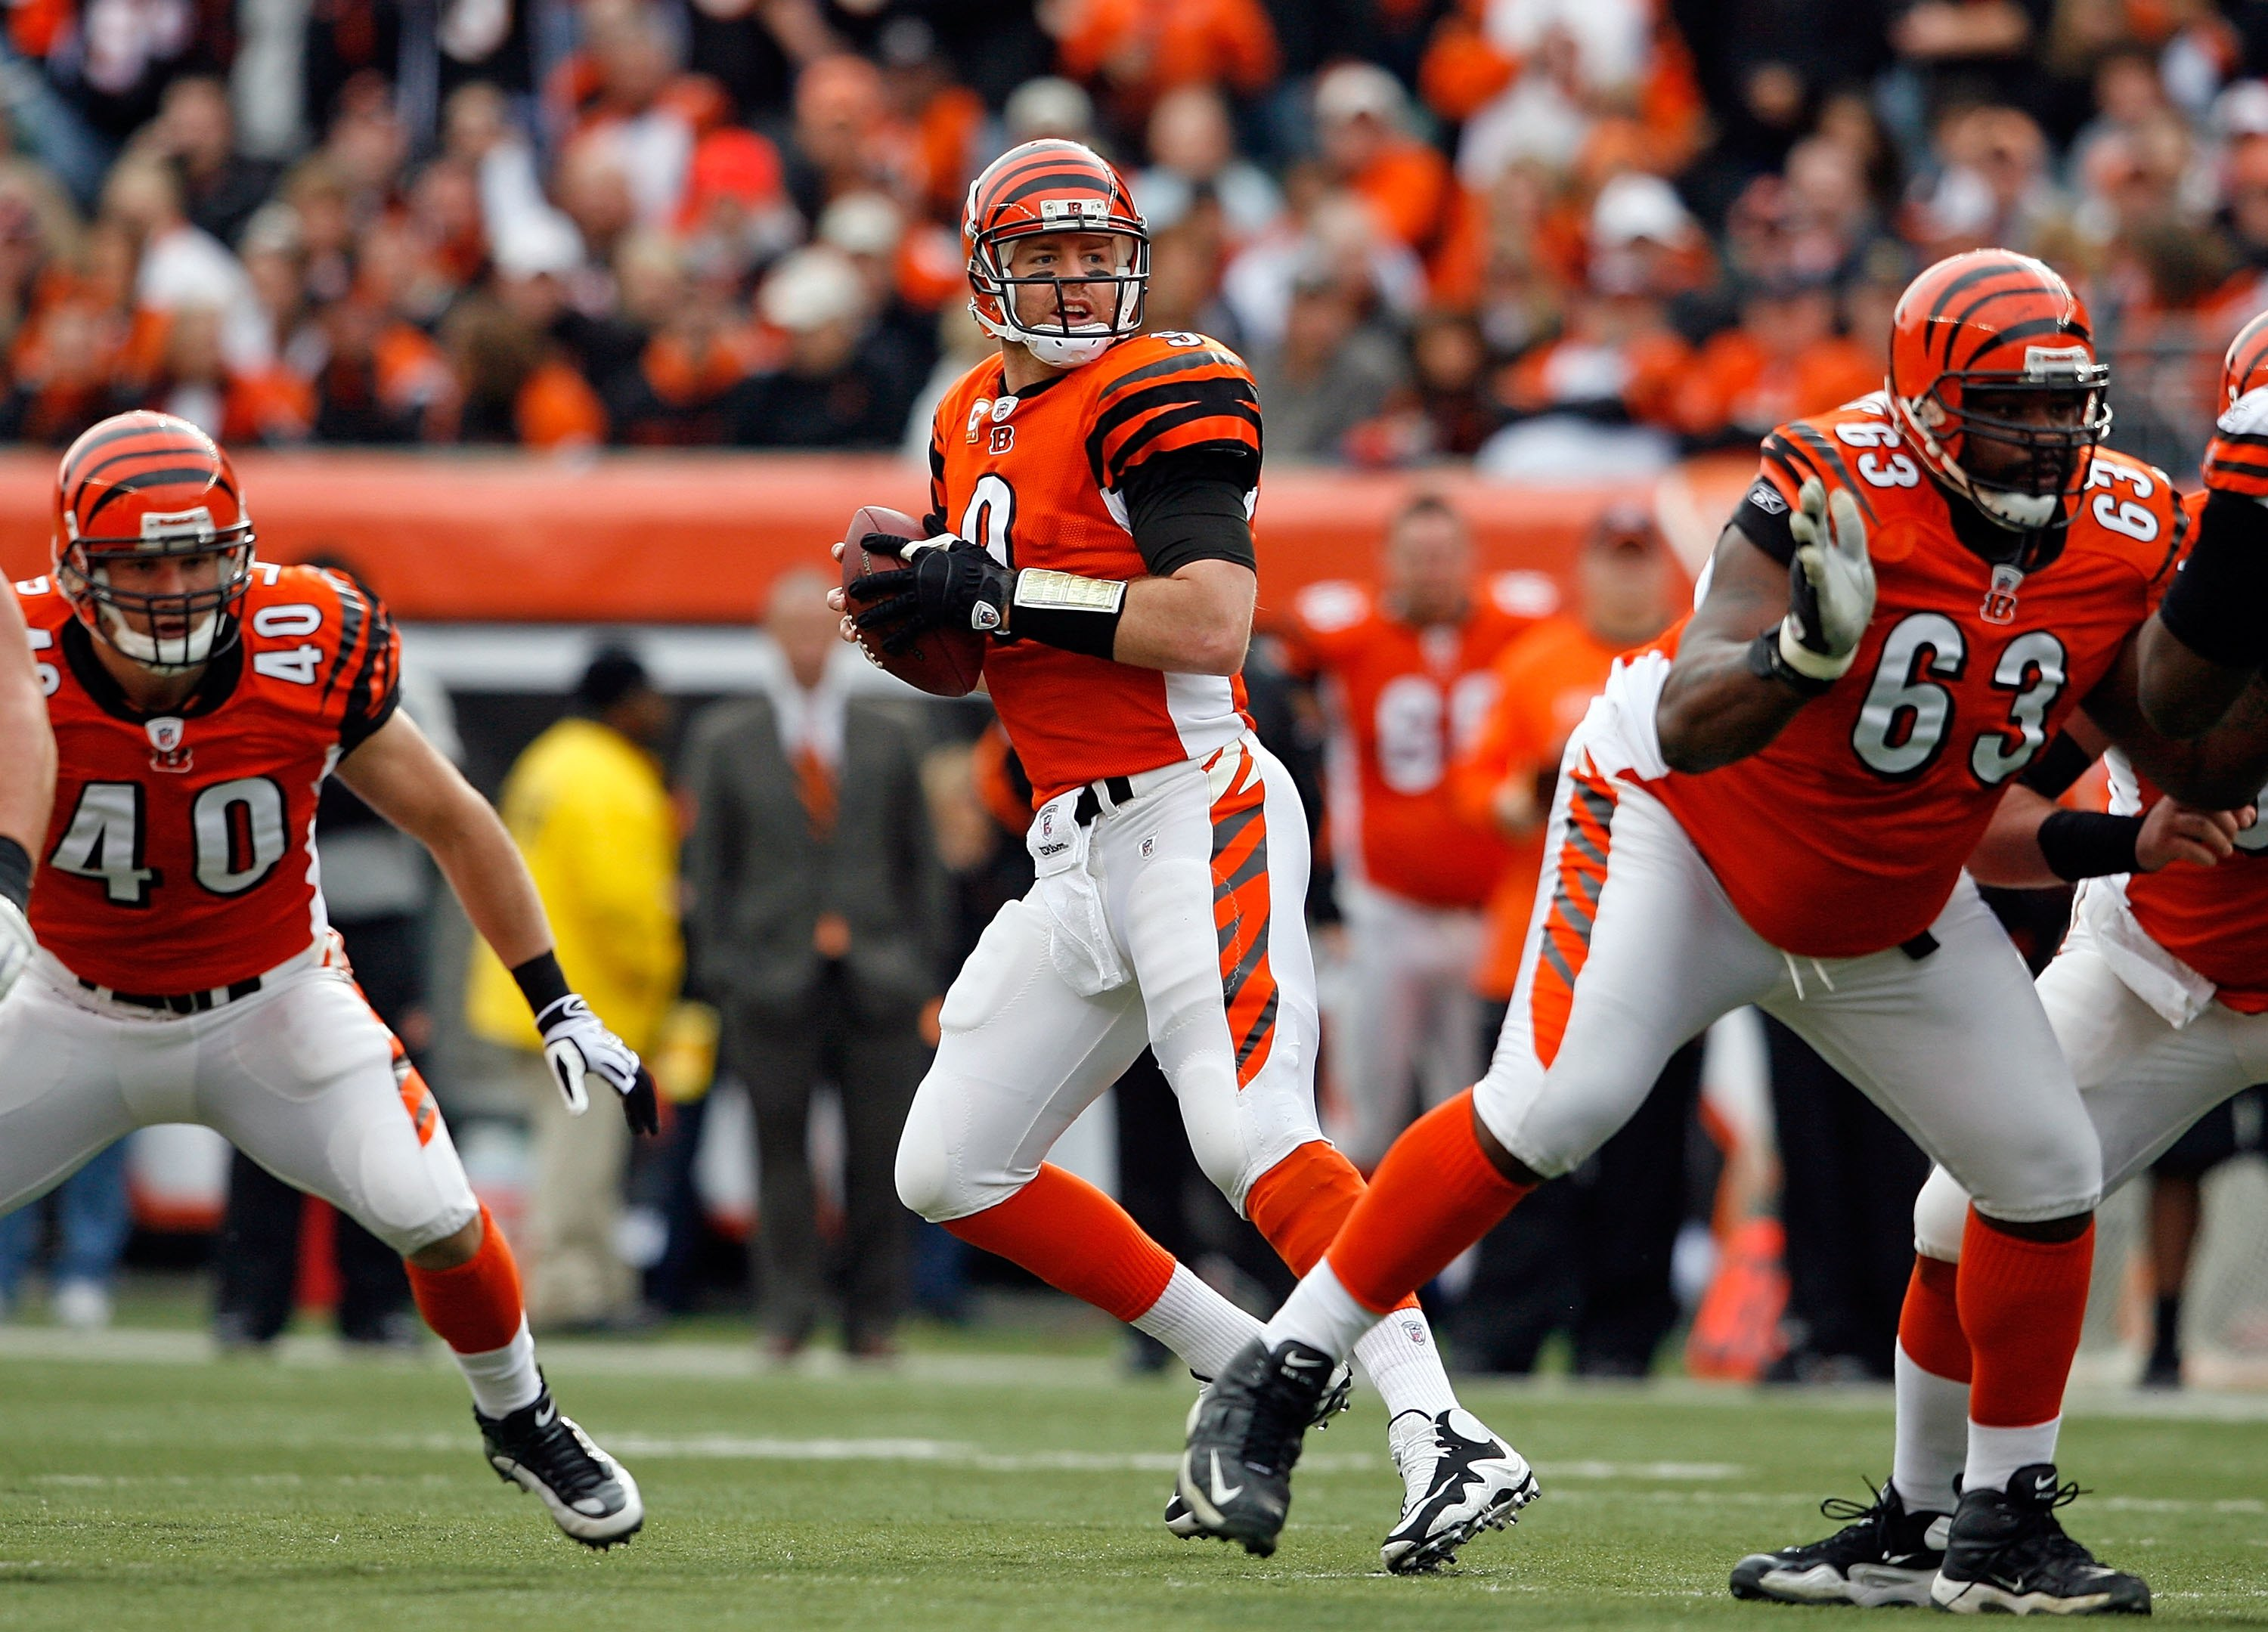 CINCINNATI - NOVEMBER 29:  Carson Palmer #9 of the Cincinnati Bengals drops back during the NFL game against the Cleveland Browns at Paul Brown Stadium on November 29, 2009 in Cincinnati, Ohio.  (Photo by Andy Lyons/Getty Images)